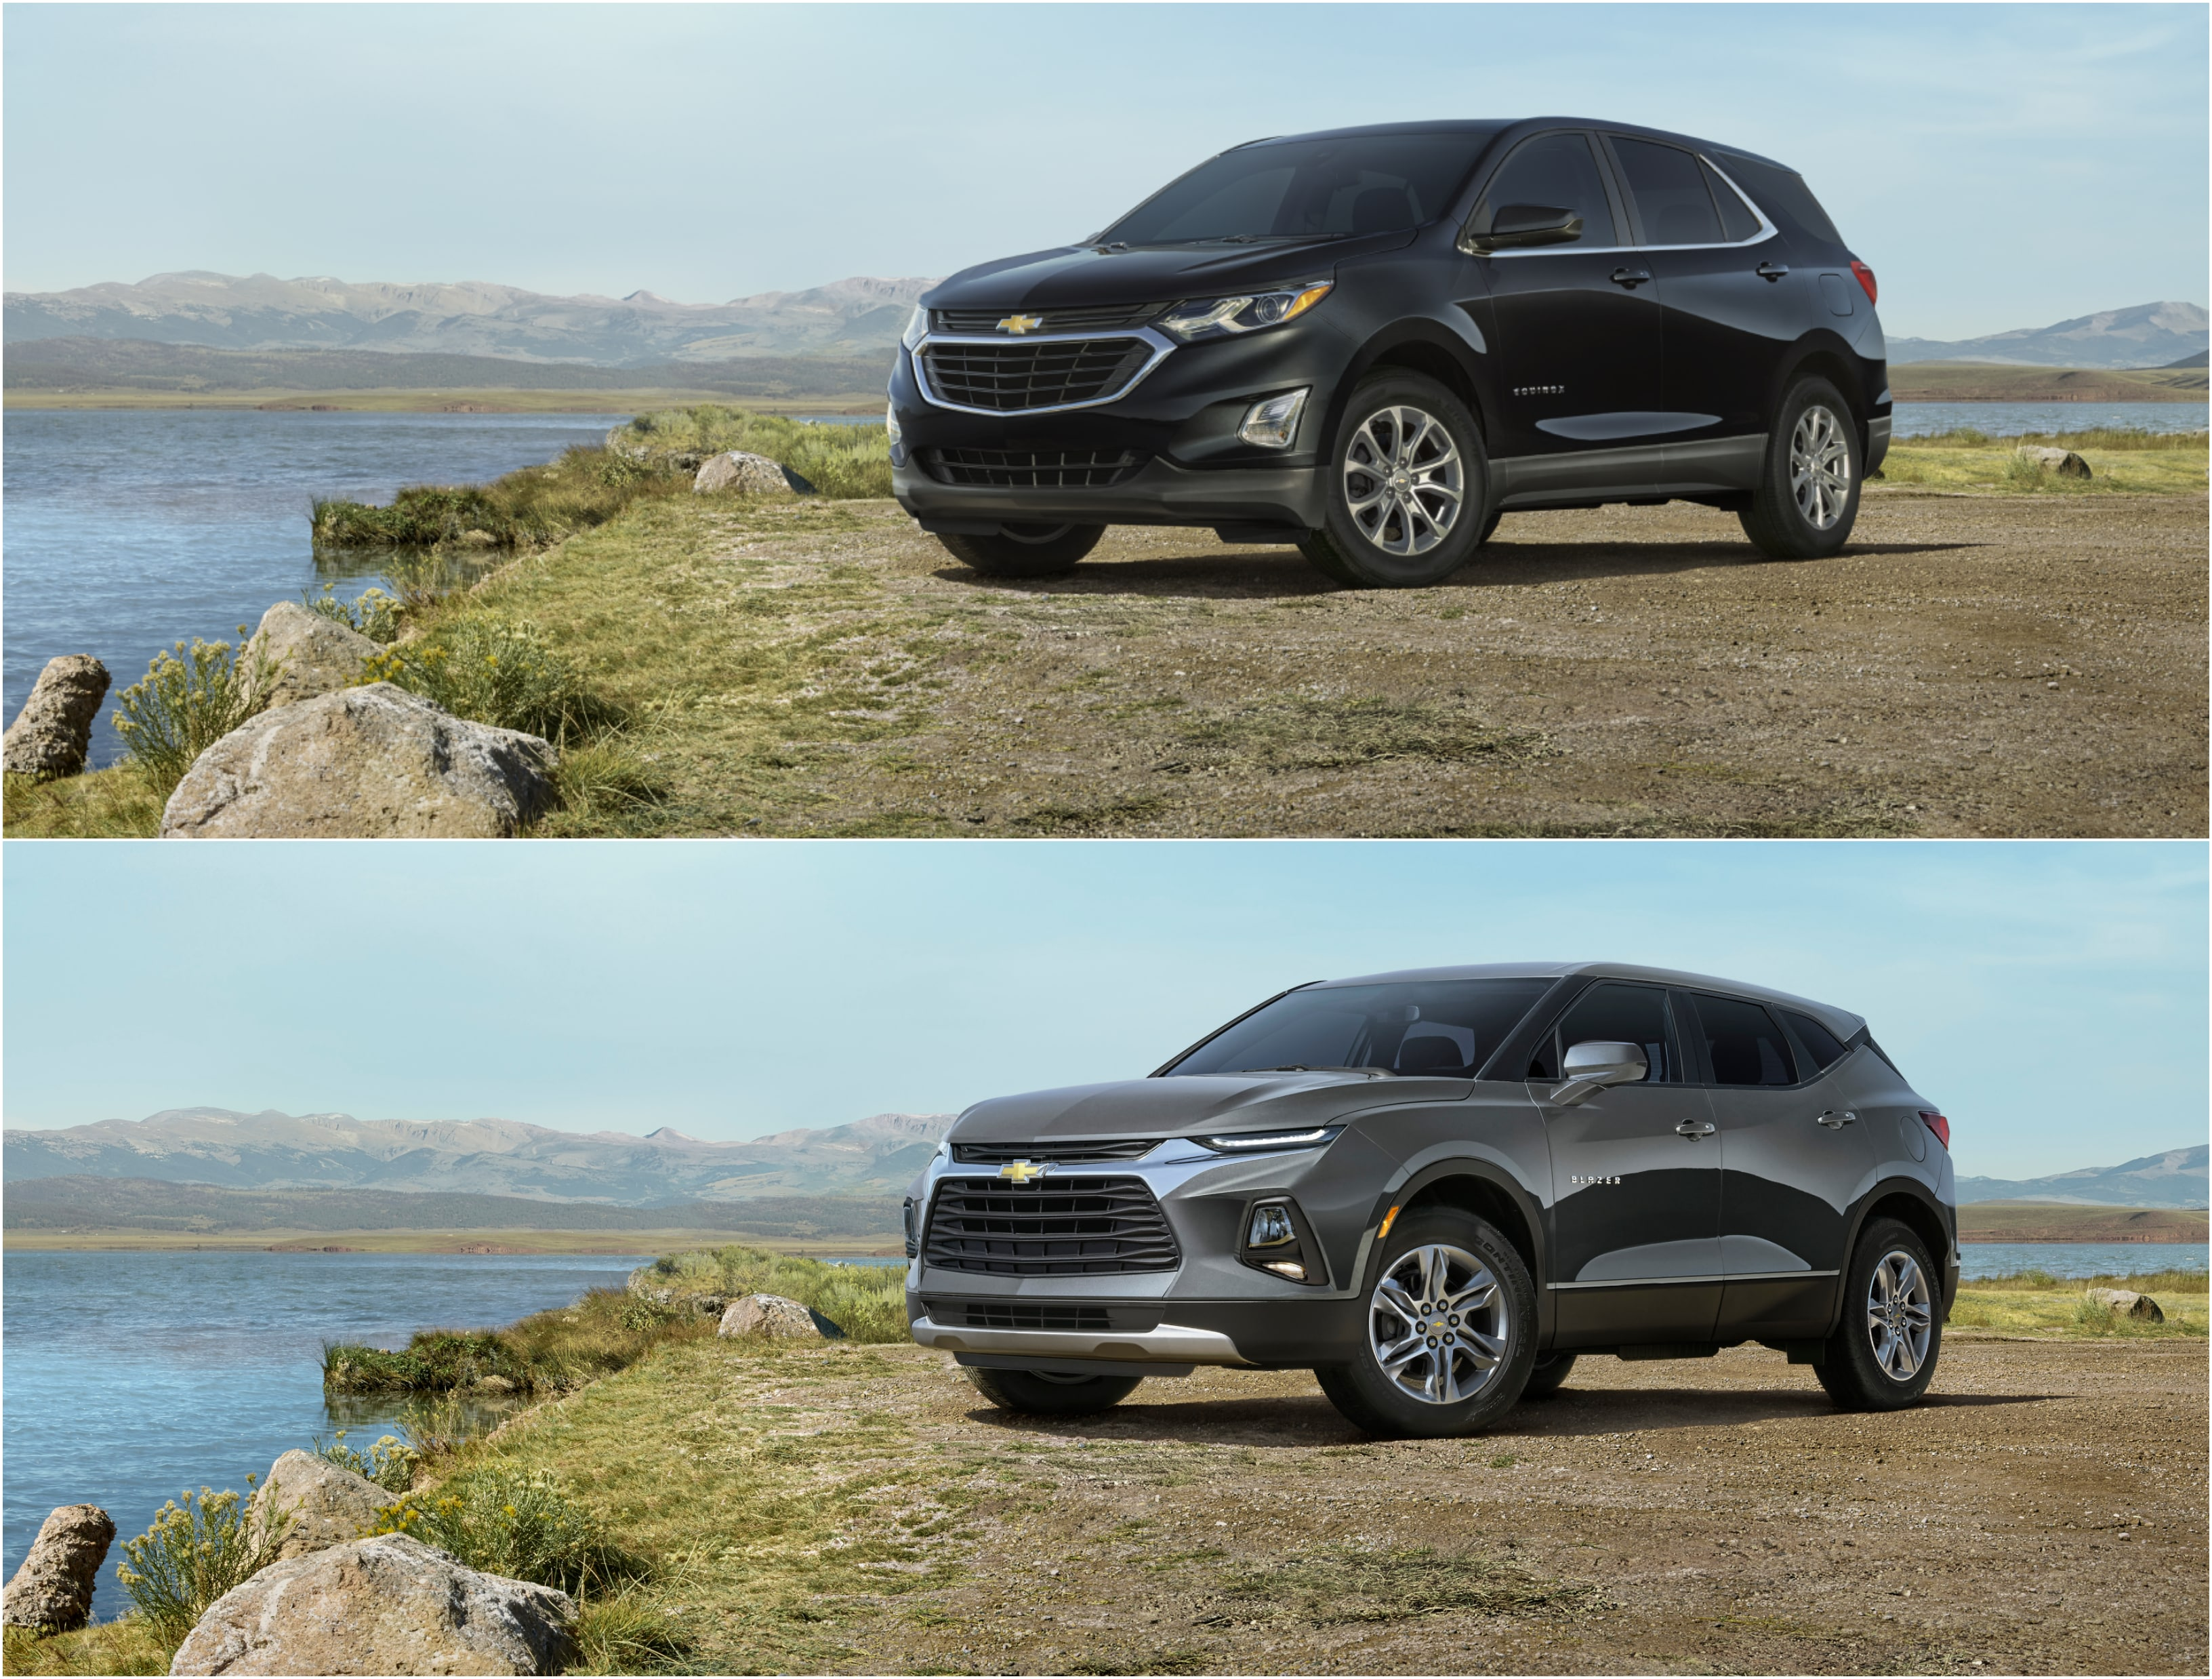 Top photo: Front 3/4 View 2021 Chevy Equinox SUV, Bottom photo:  Front 3/4 View 2021 Chevy Blazer SUV